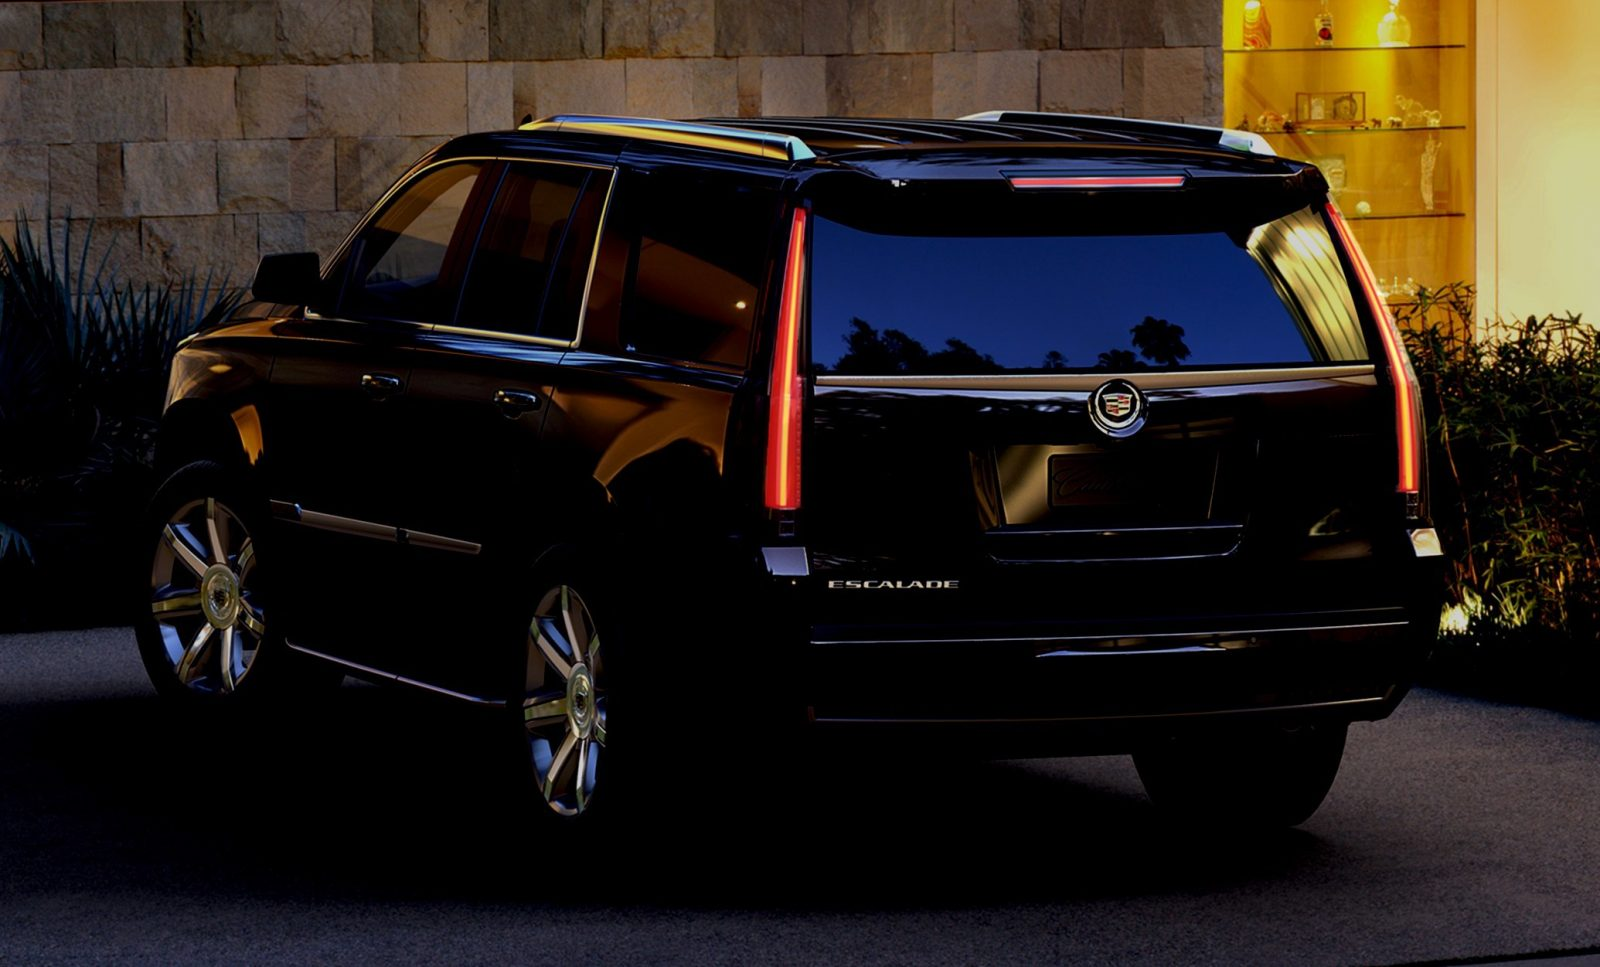 2015 Cadillac Escalade In-Depth Review + Mega Galleries38